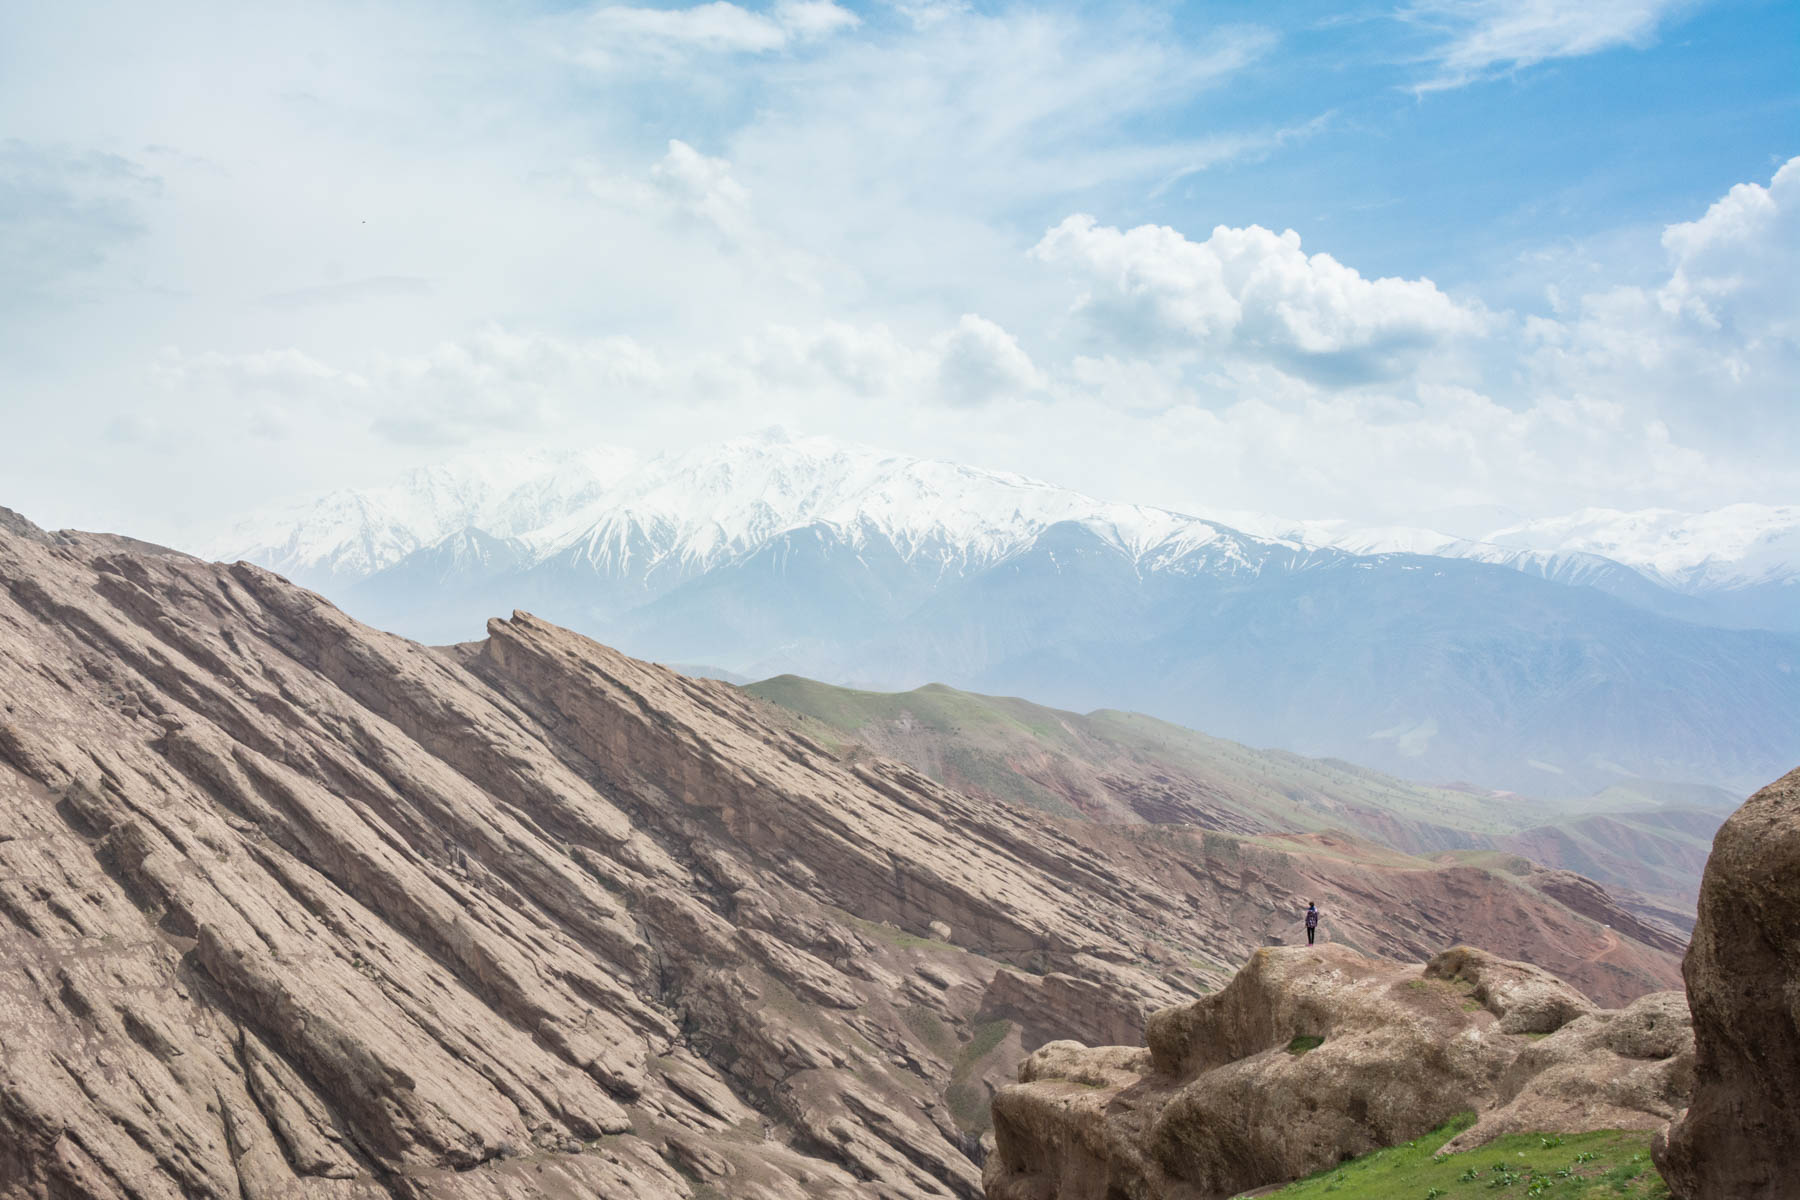 Rock formations in the Alamut Valley in northern Iran.